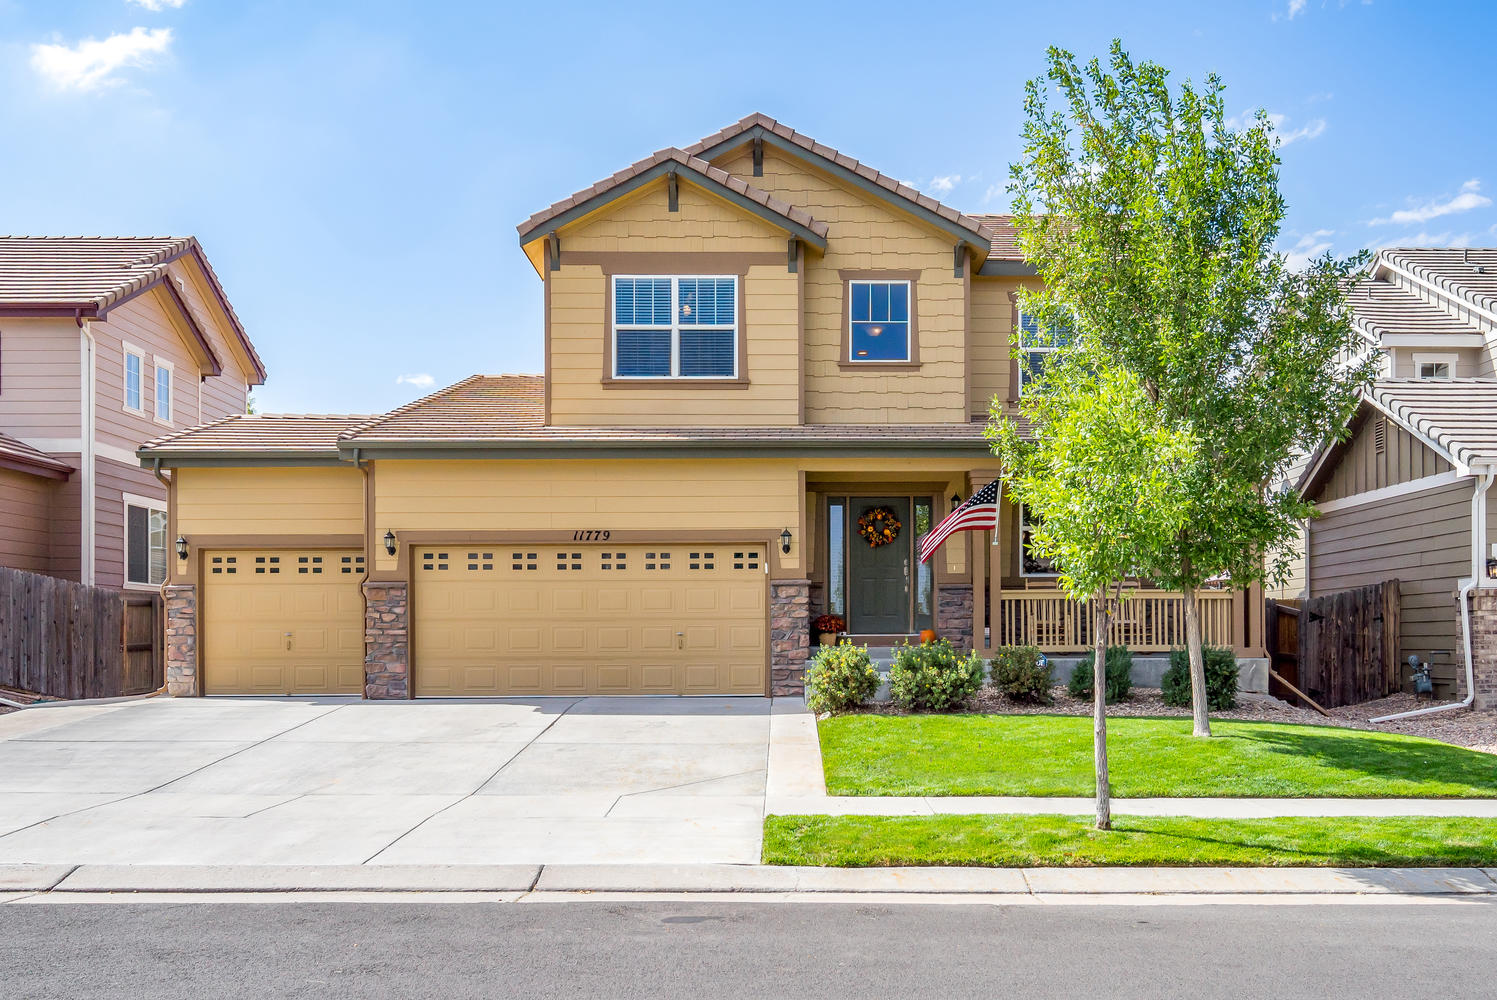 11779 Jasper St, Commerce City, CO 80022